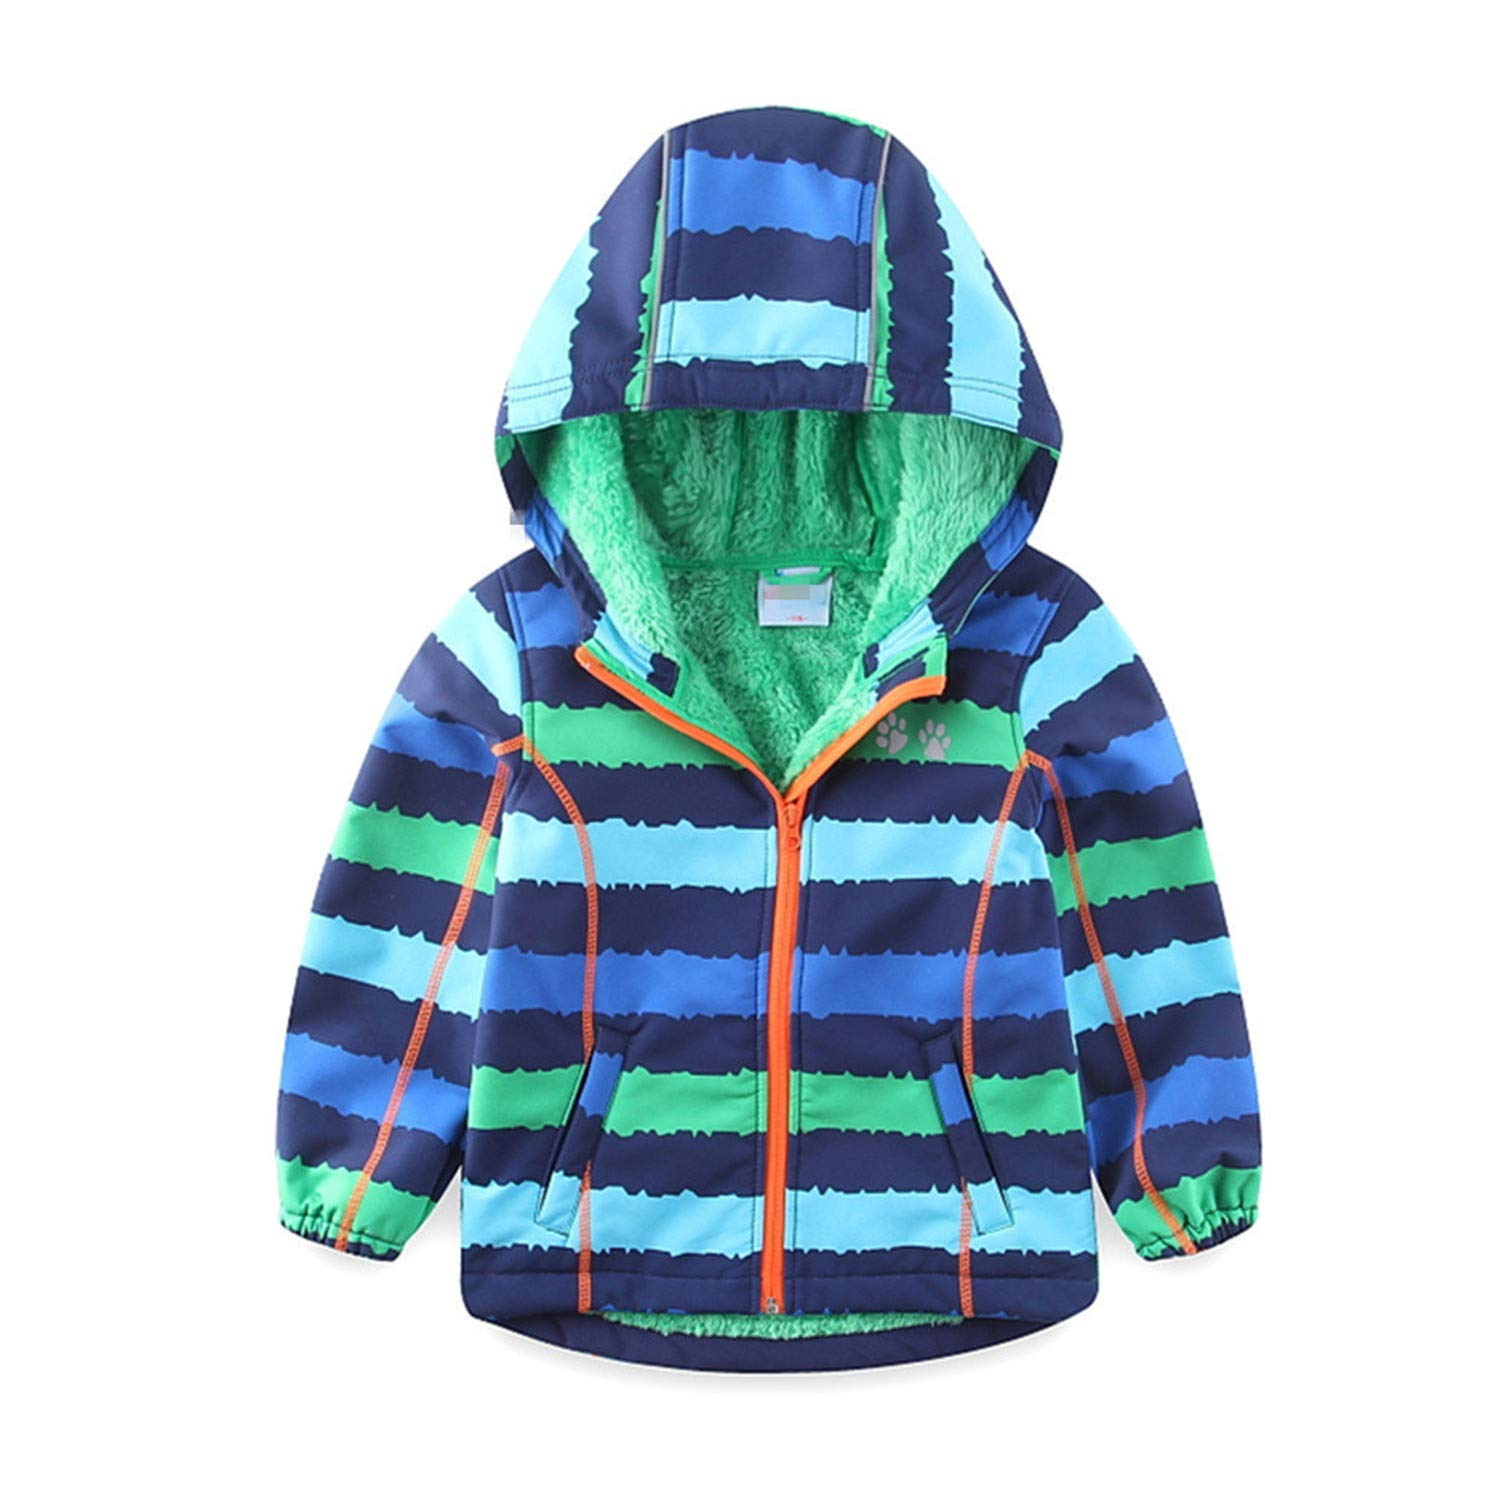 Daniel Galsworthy Windbreaker Jacket for Boys Waterproof with Fleece Lining Soft